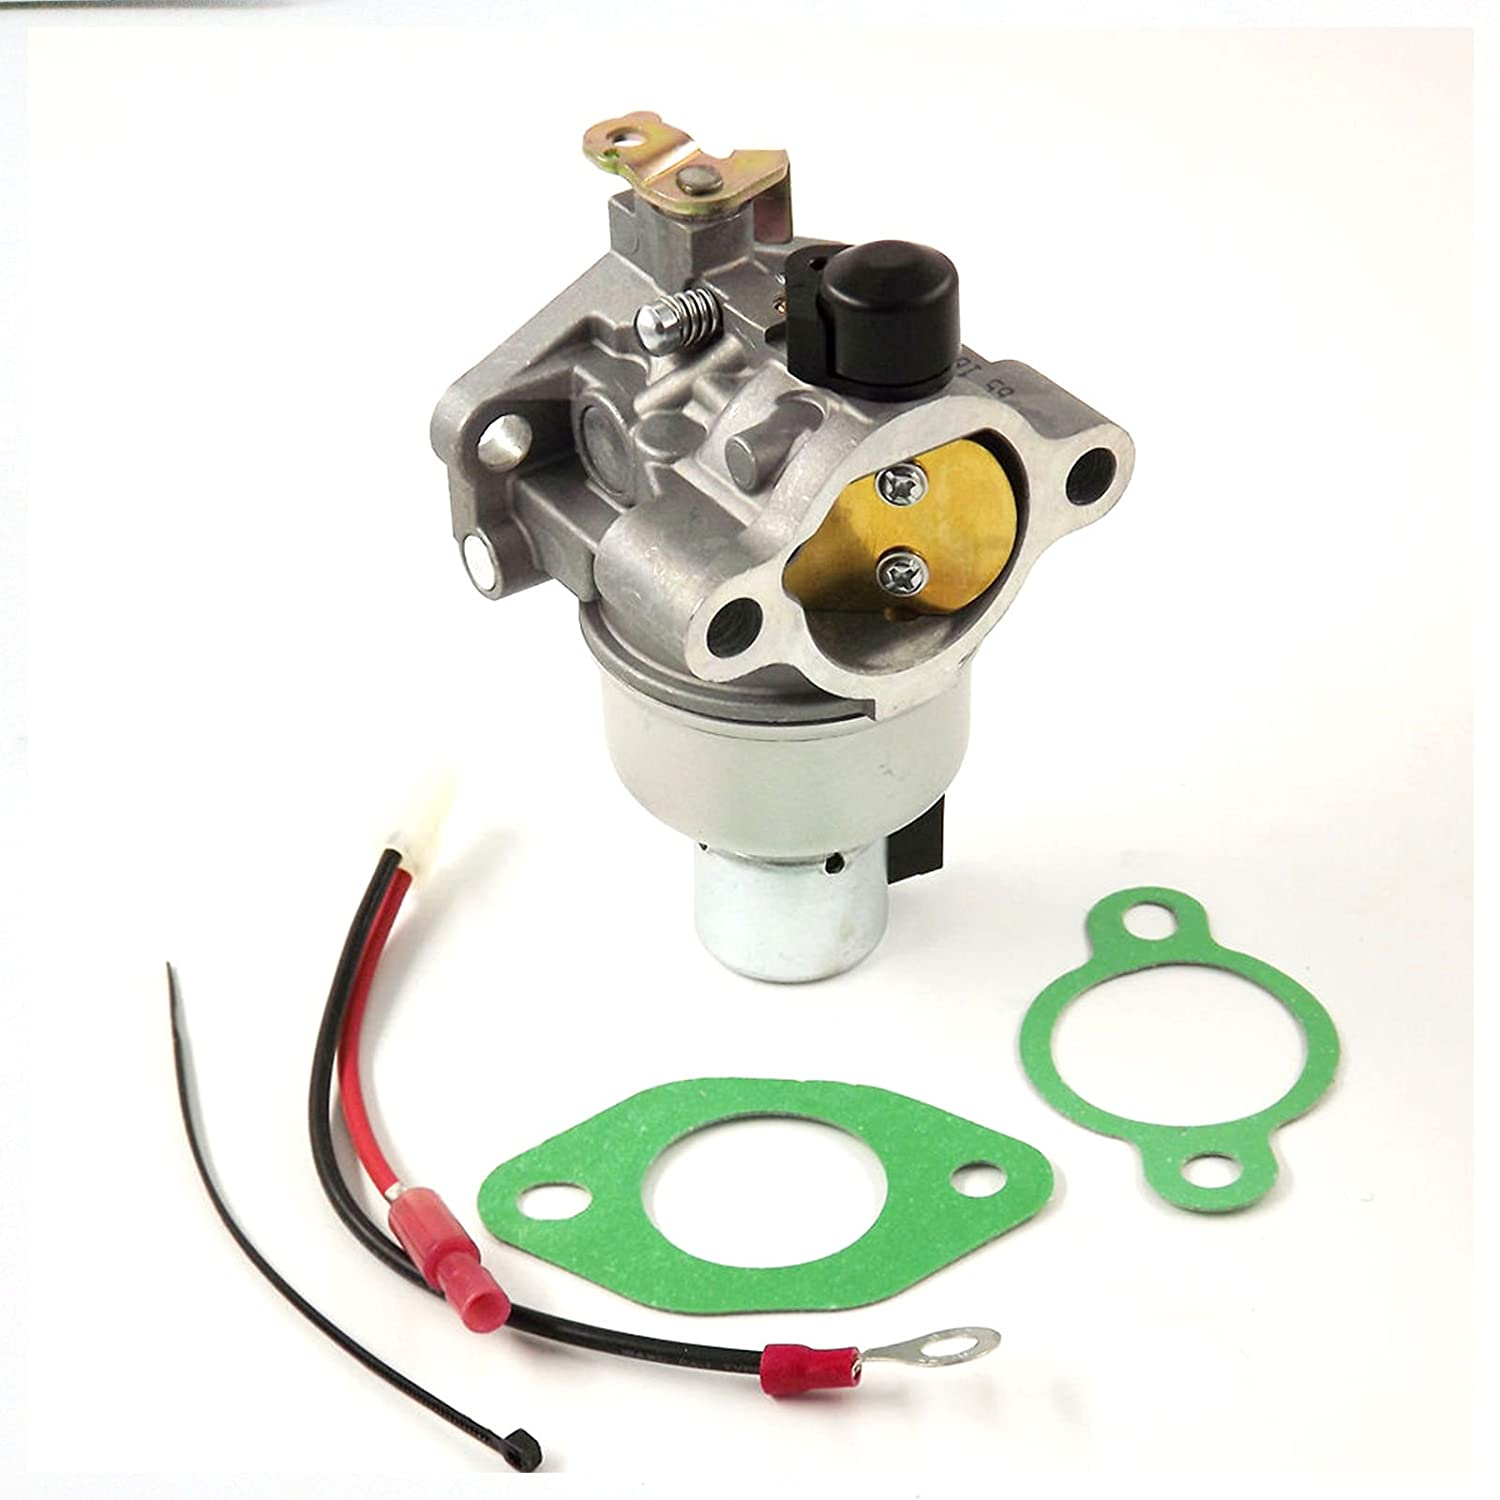 BH-Motor New Carburetor Carb for Kohler CV14 CV15 CV15S CV16S 42 853 03-S 42-853-03